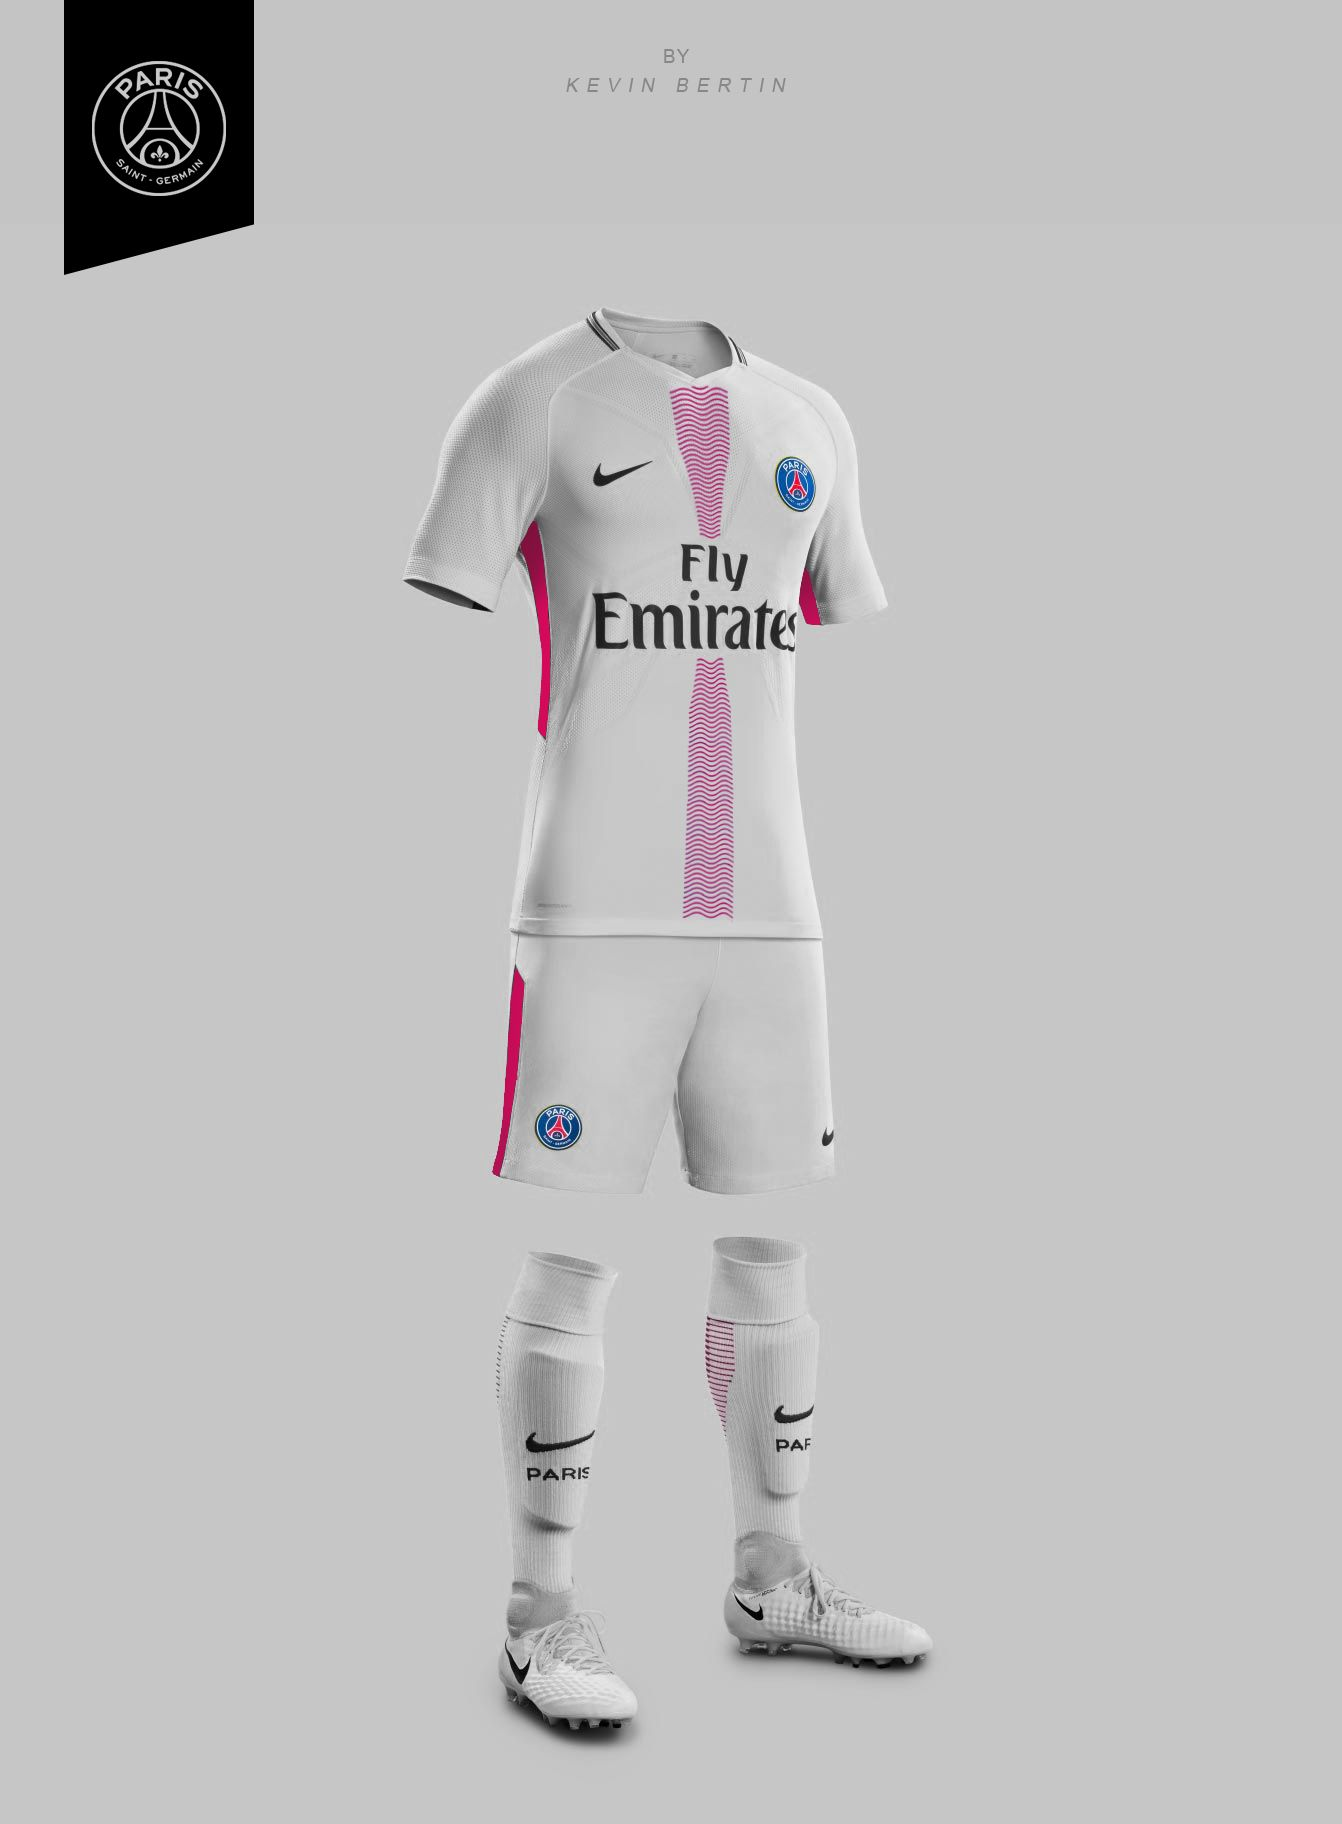 Maillot Exterieur Psg 2017 Psg Concept Design By Kevin Bertin Jersey Maillot Kit 2018